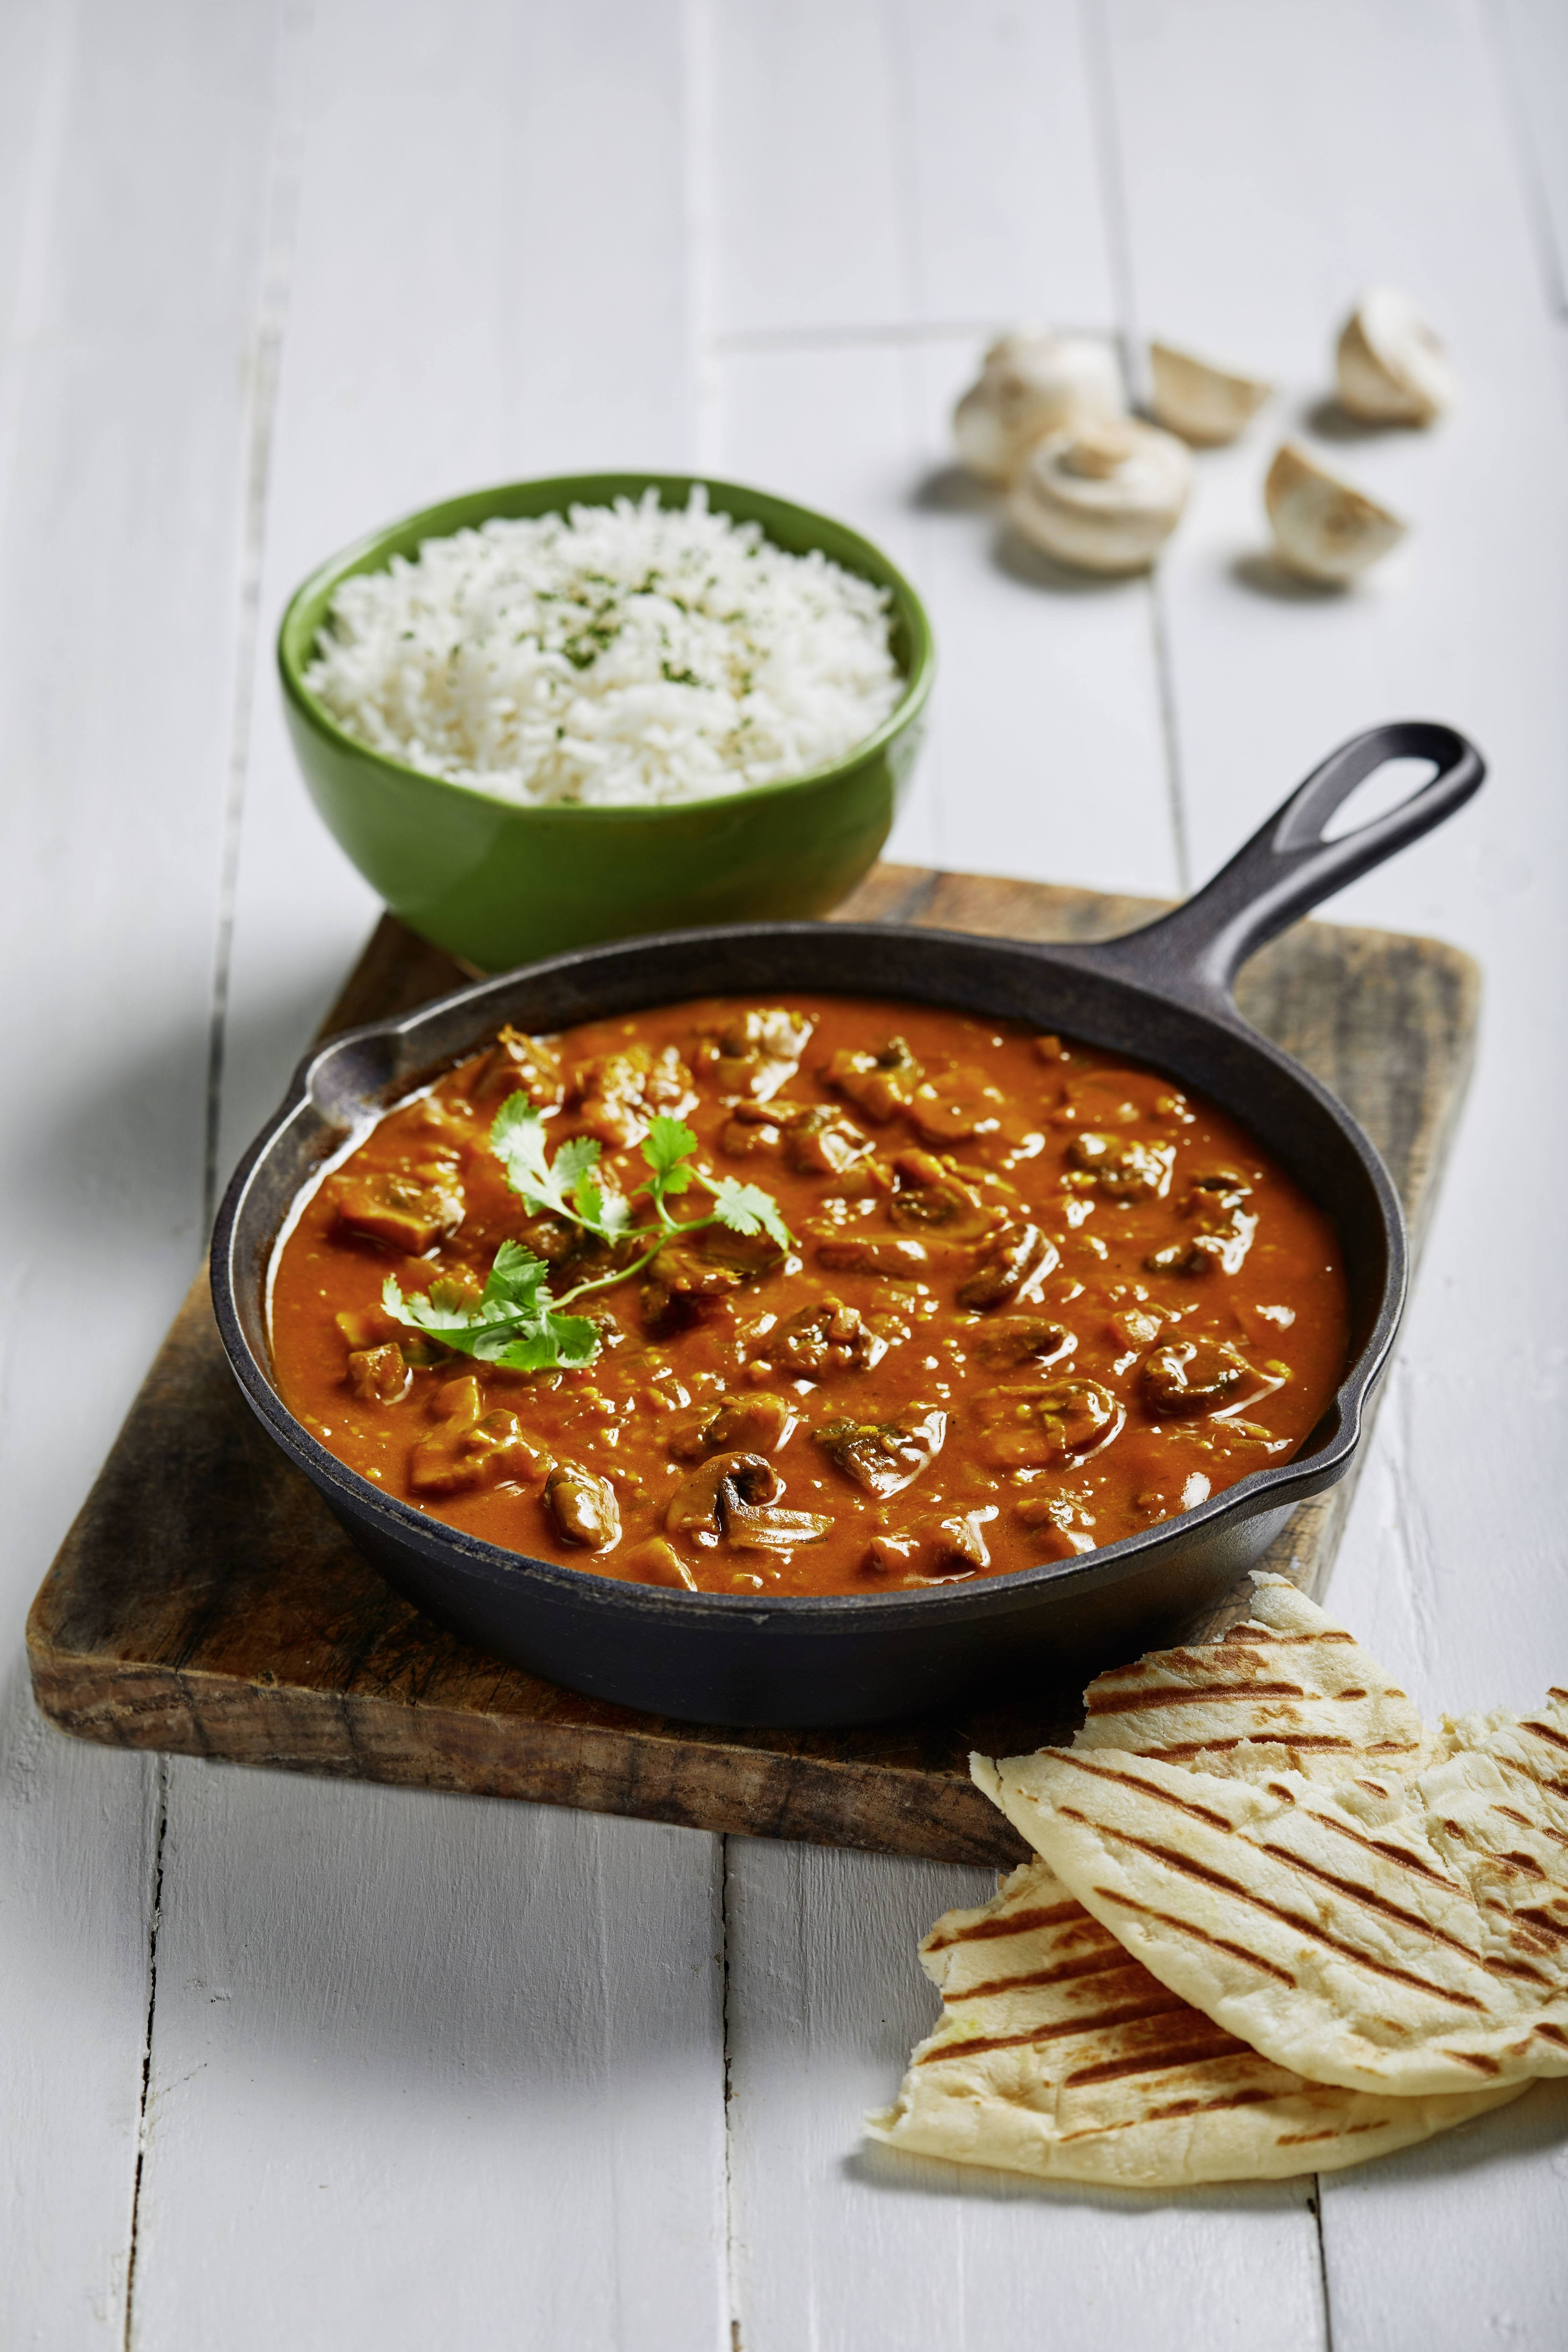 Spicy Mushroom Curry with Naan Bread and Rice